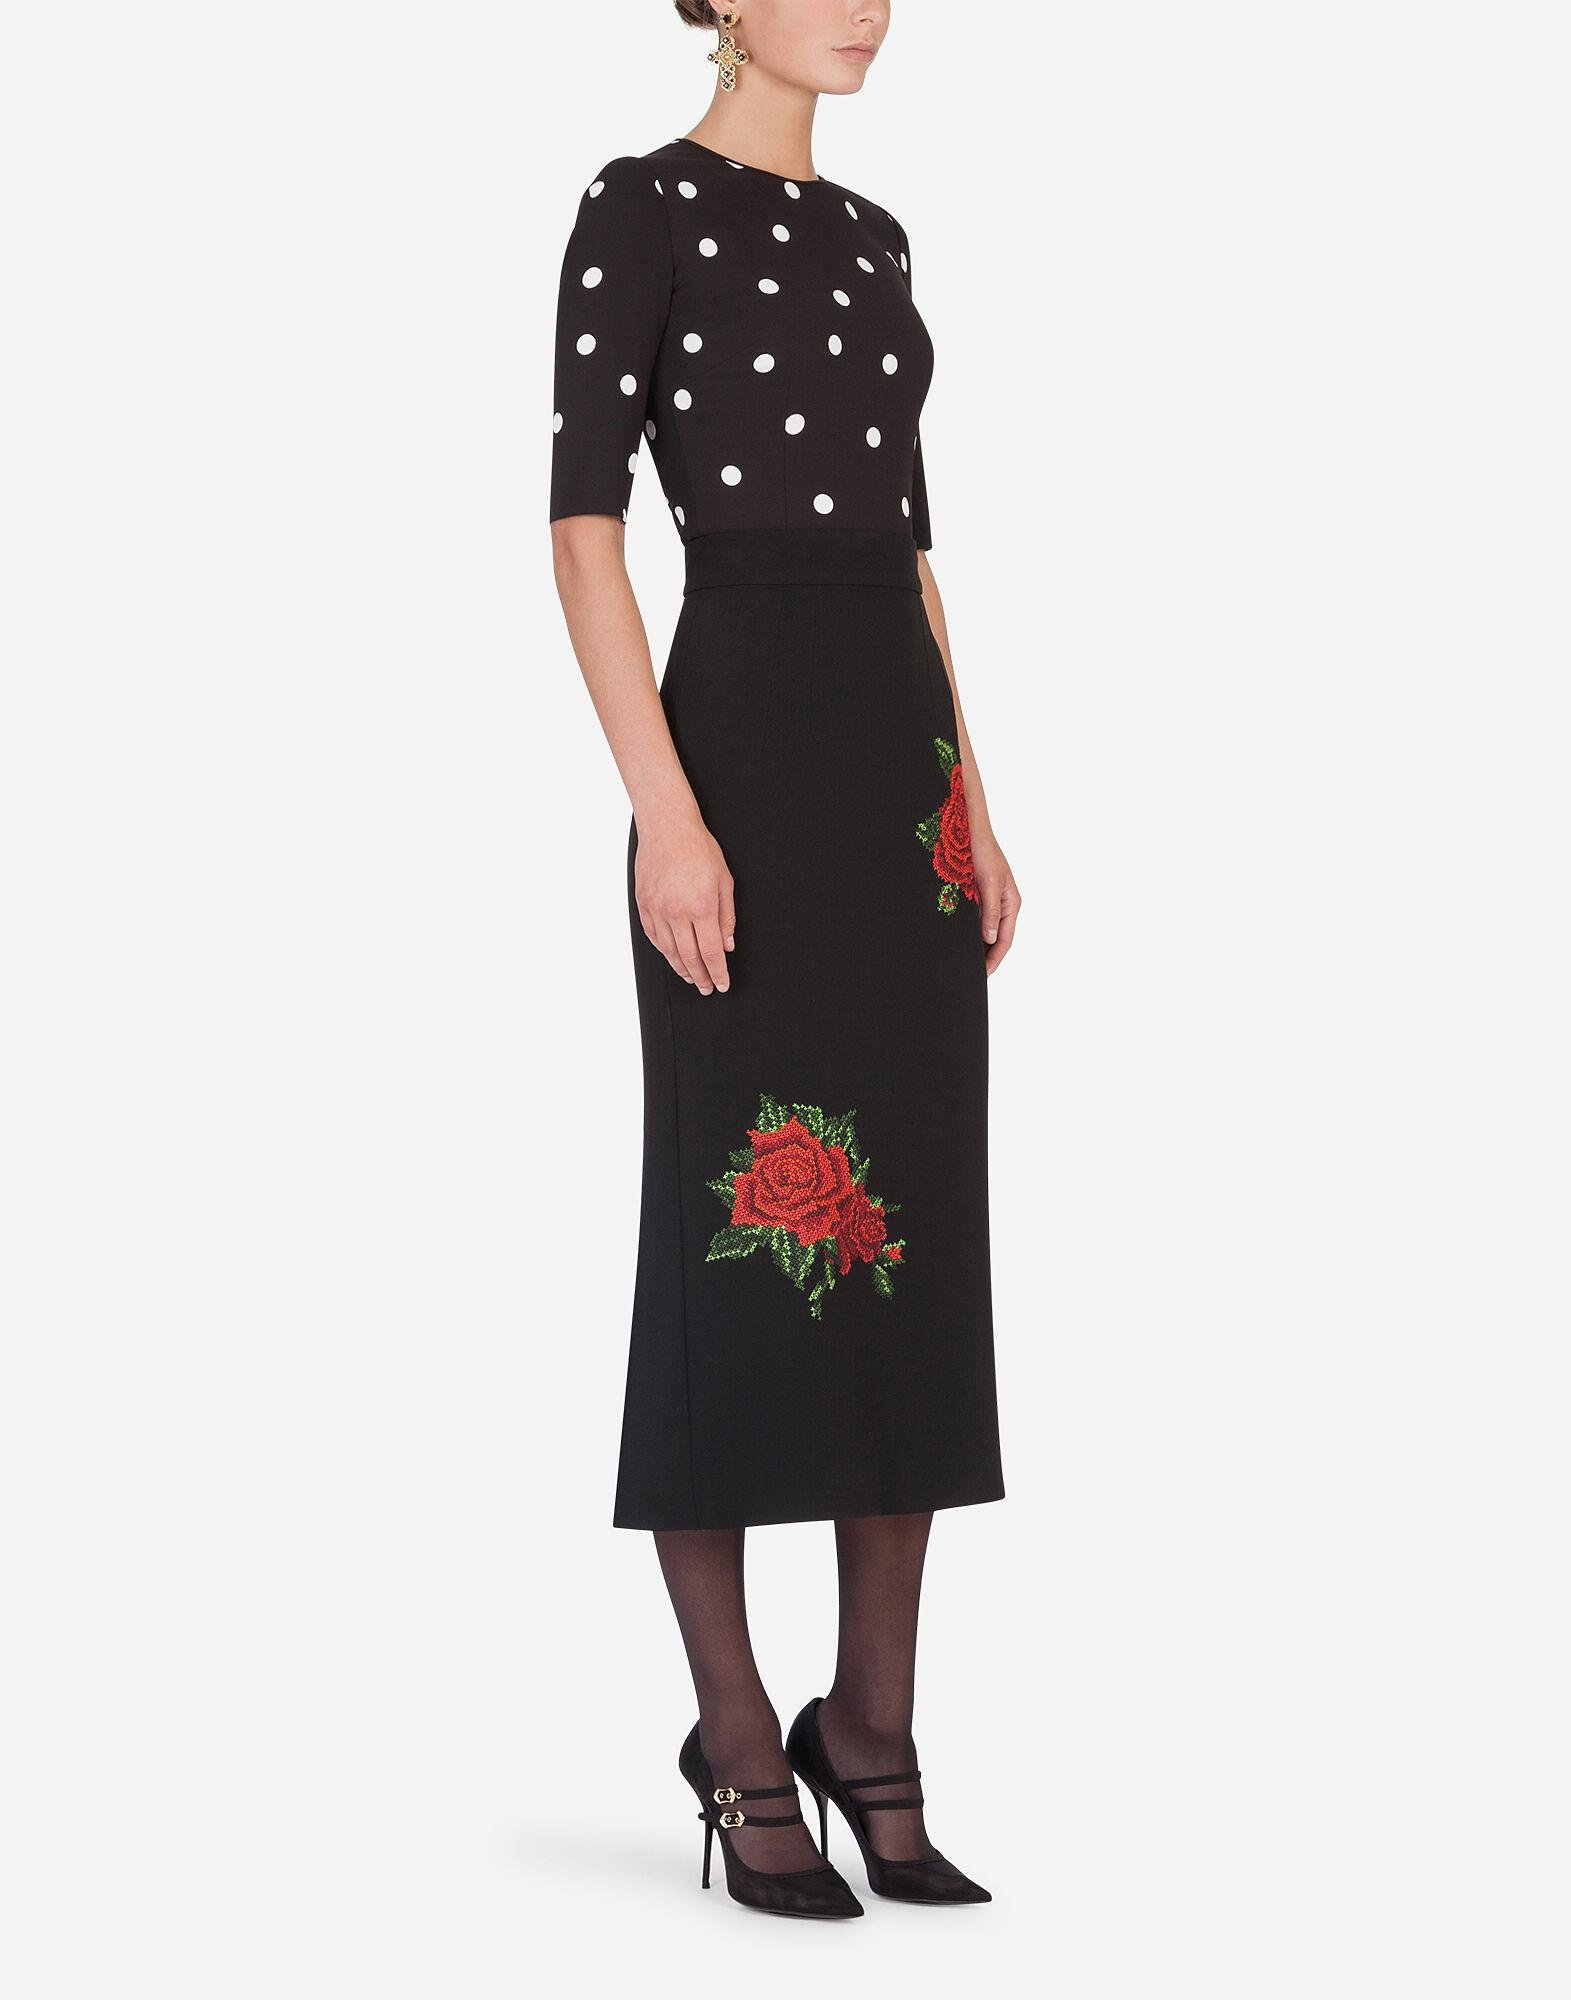 Pencil skirt with rose embroidery 2